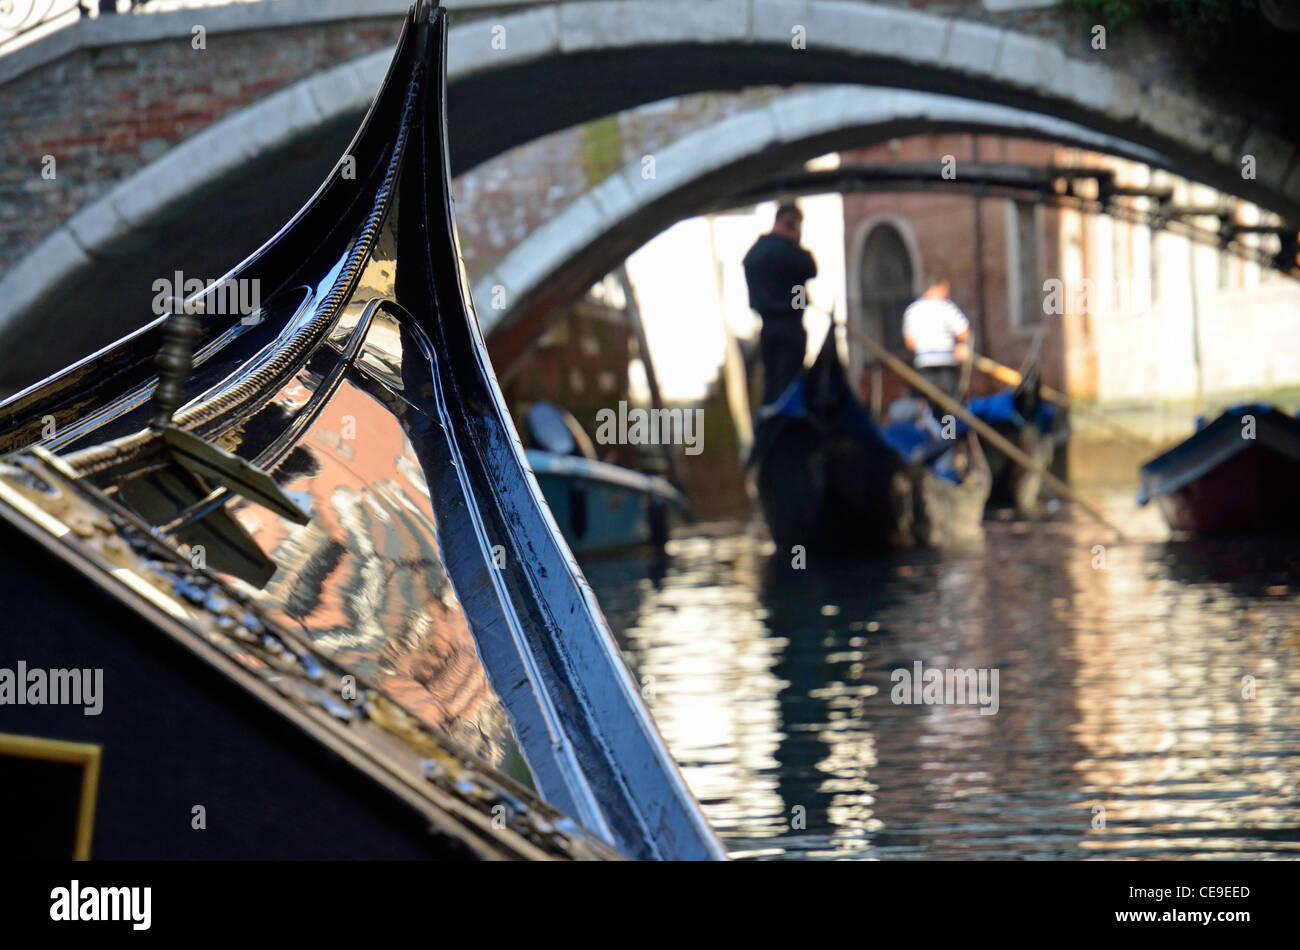 Gondola bow and gondoliers on the canals, Venice, Italy - Stock Image